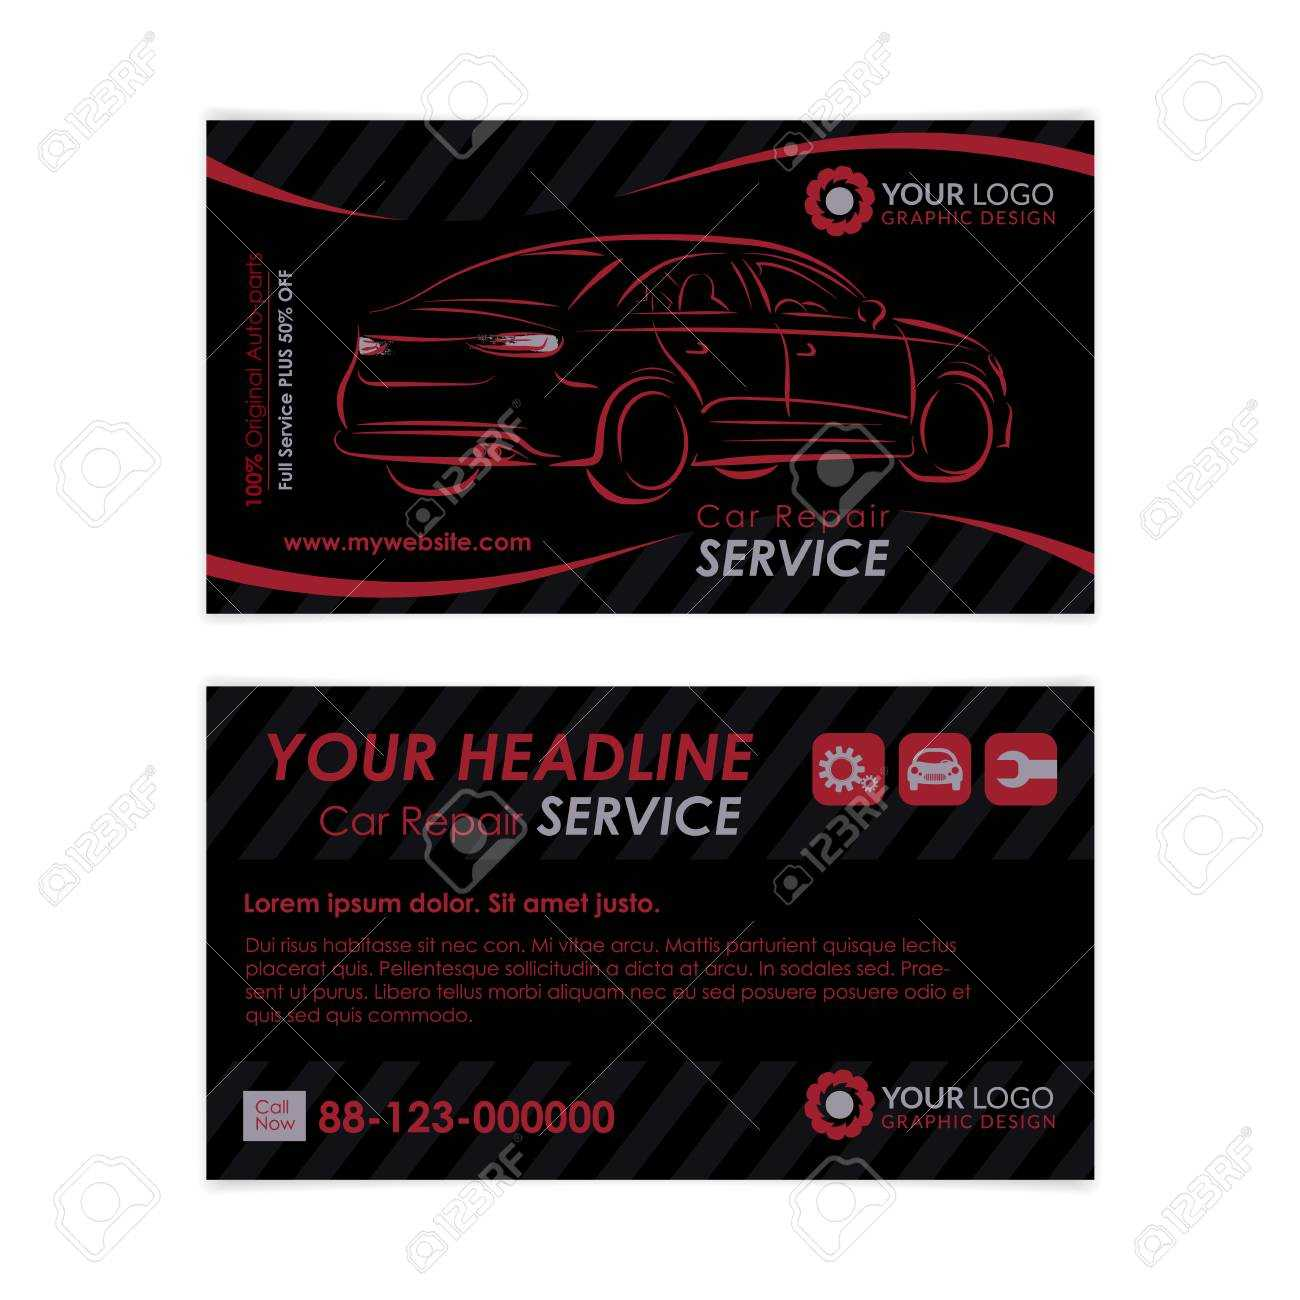 Auto Repair Business Card Template. Create Your Own Business.. in Automotive Business Card Templates